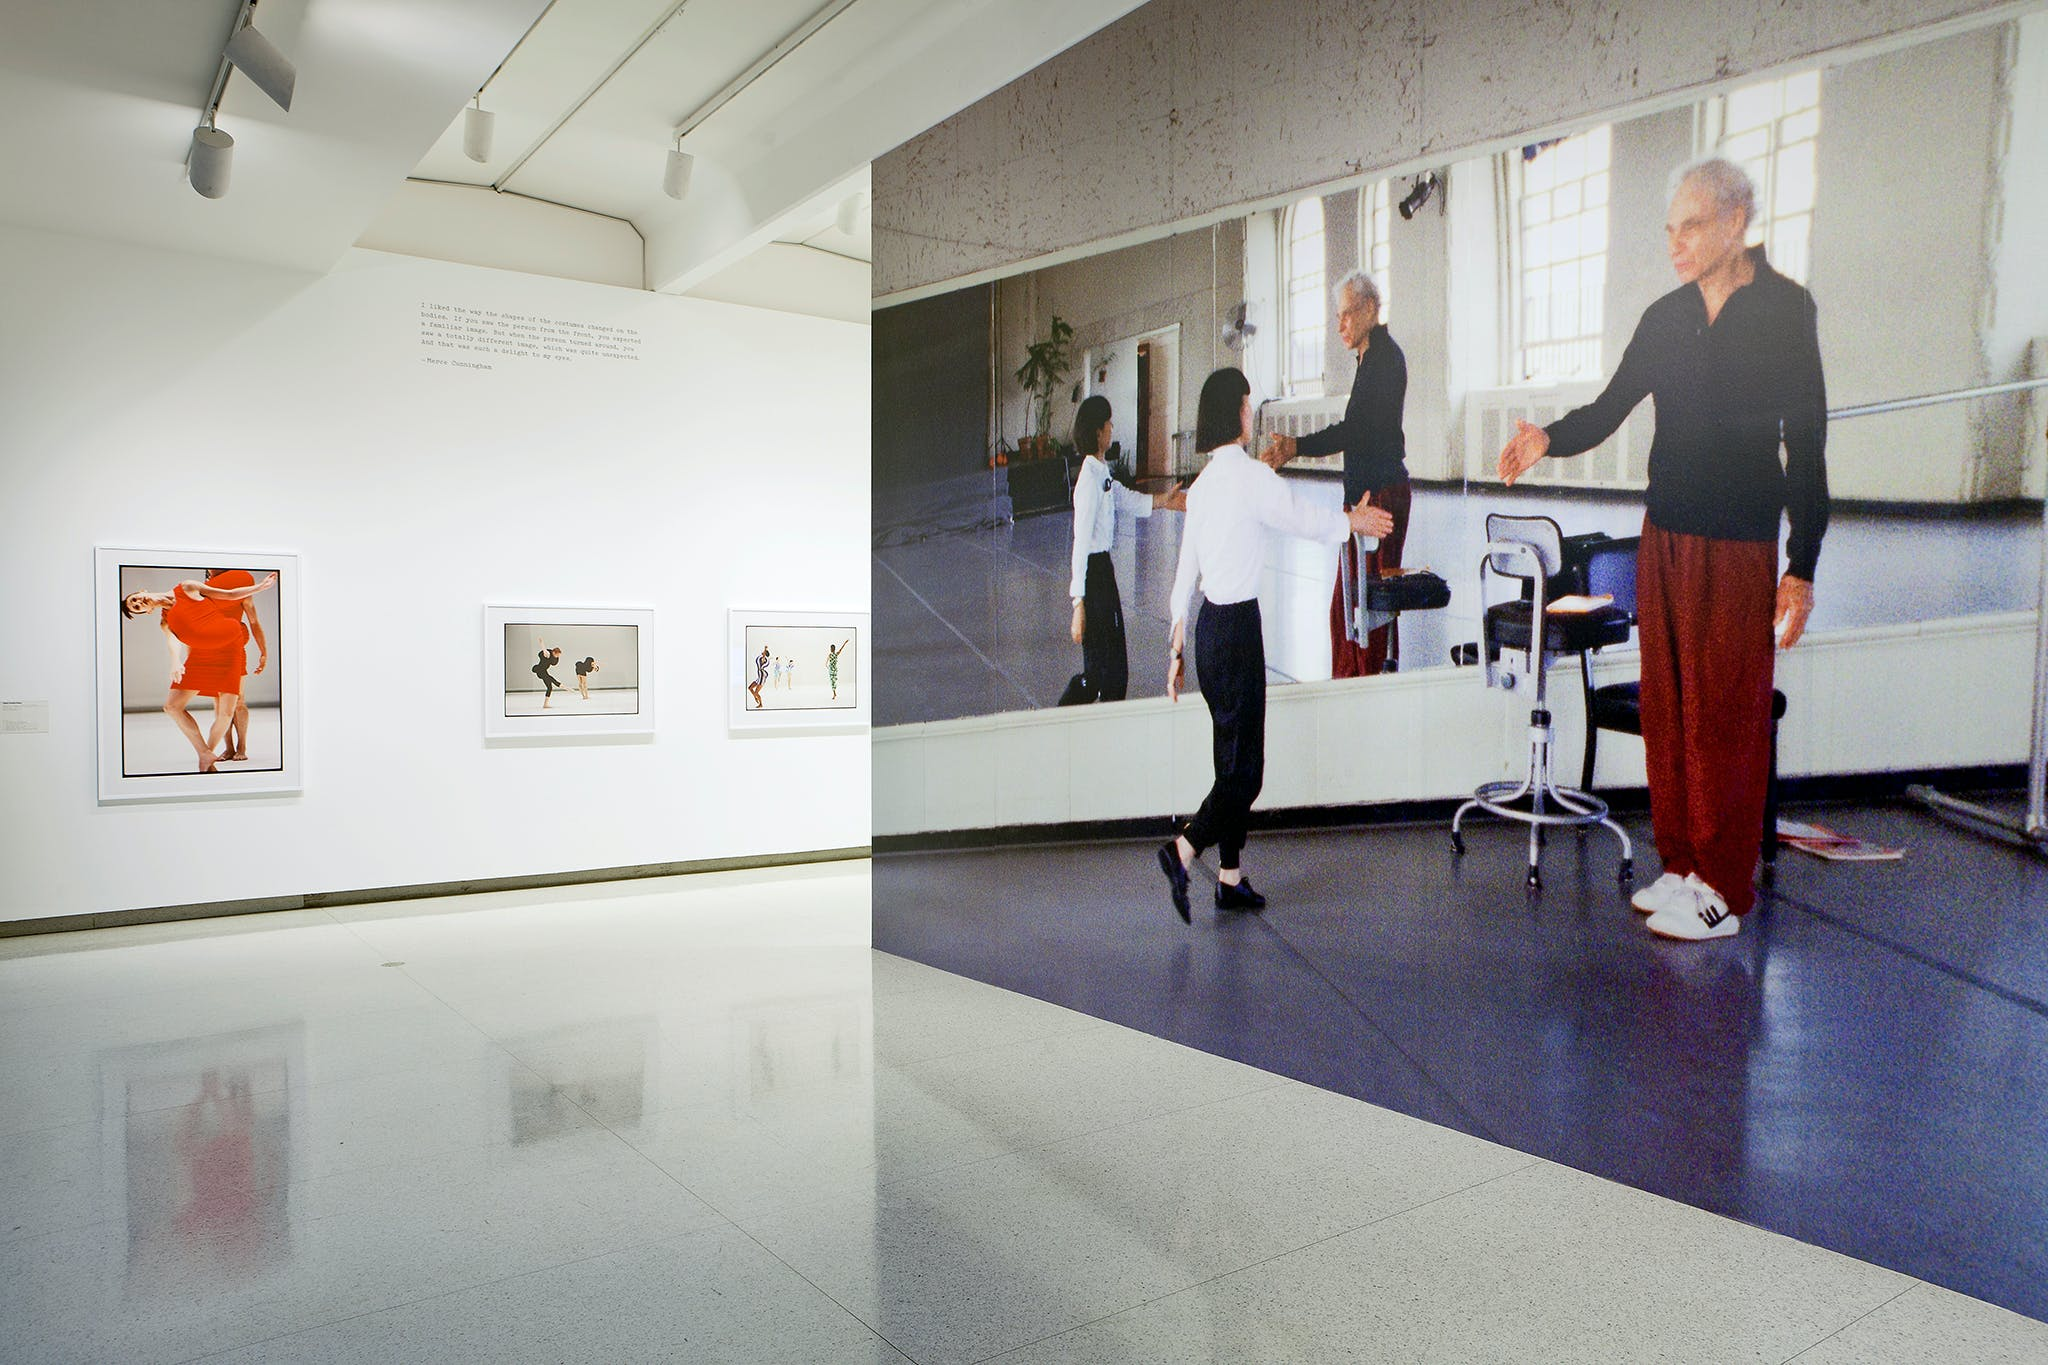 Installation view of the exhibition Dance Works III: Merce Cunningham / Rei Kawakubo, 2012